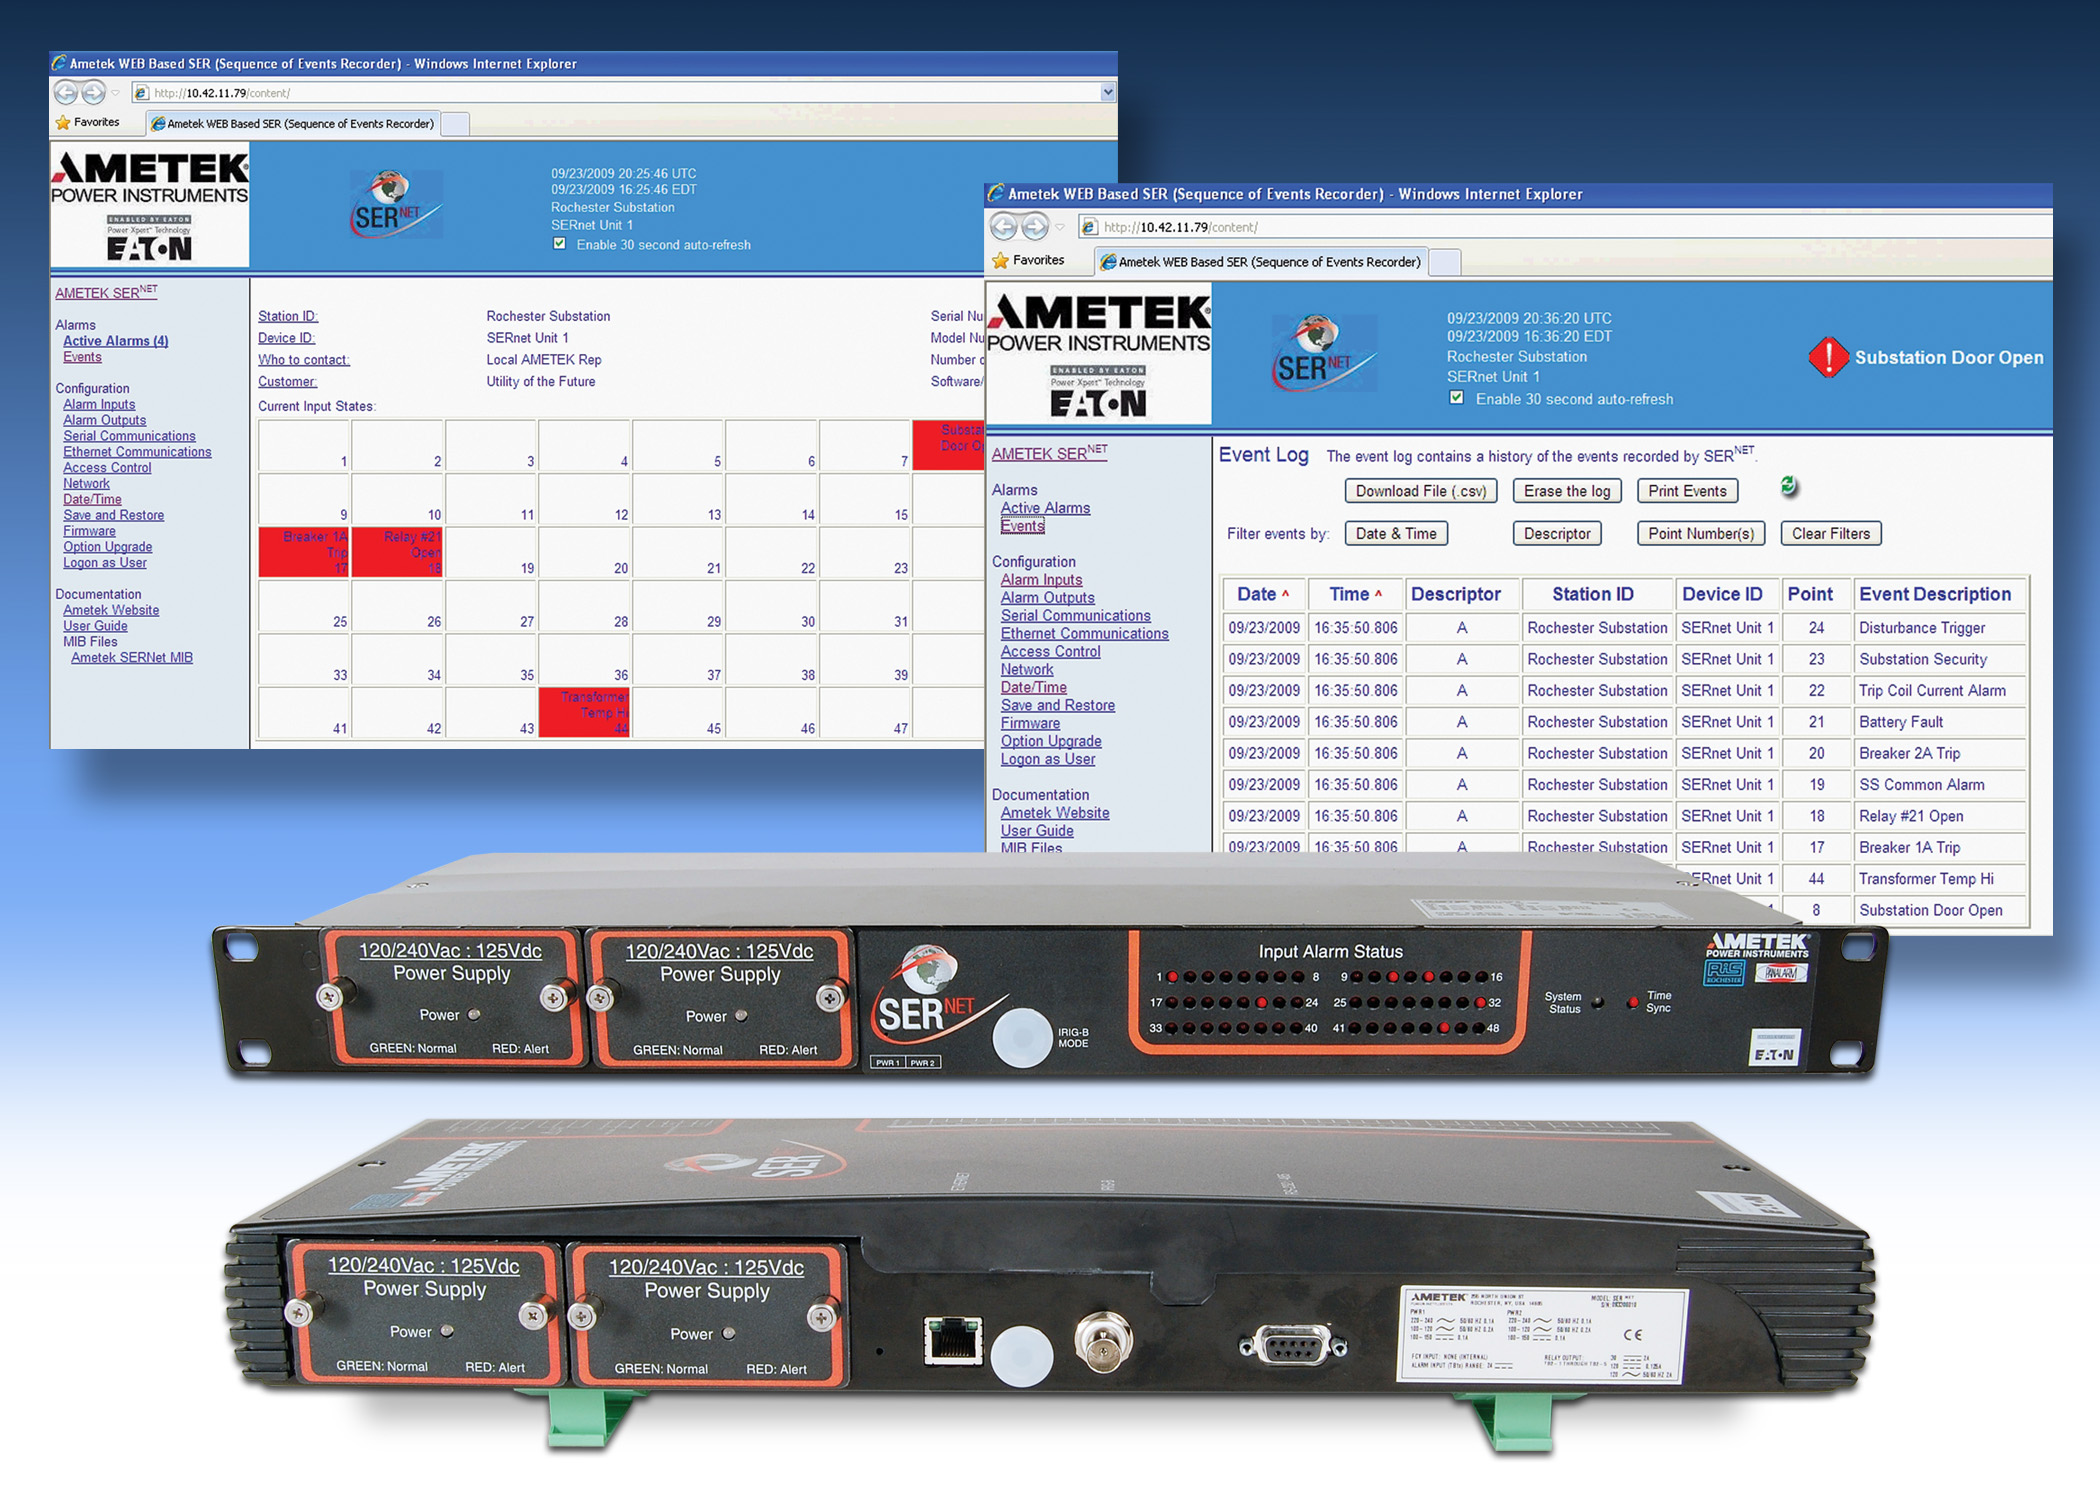 AMETEK INTRODUCES IEC61850 PROTOCOL ON SERNET ALARM